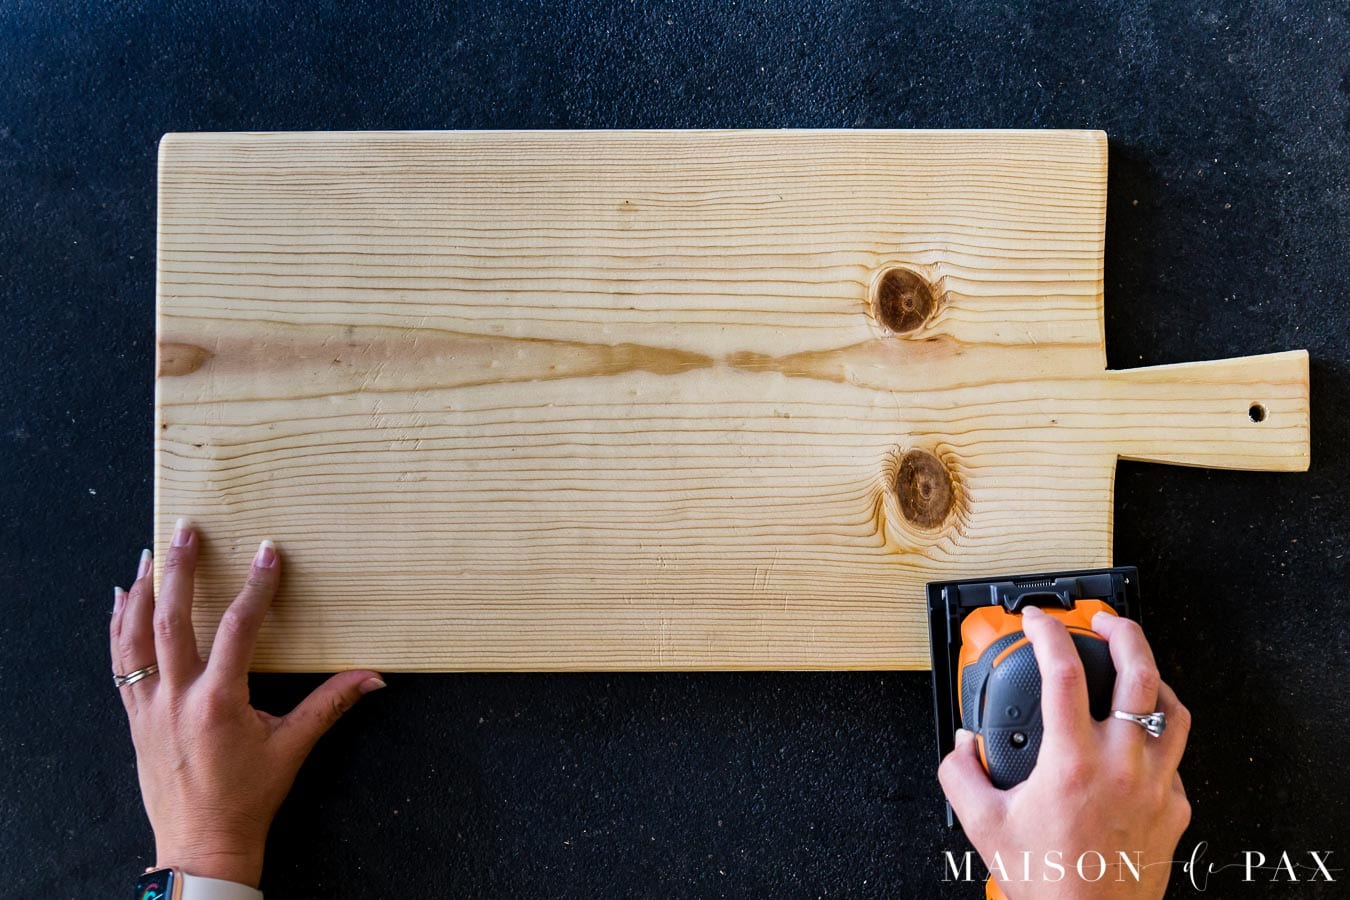 Sanding smooth edges of a pine common board for a cutting board | Maison de Pax